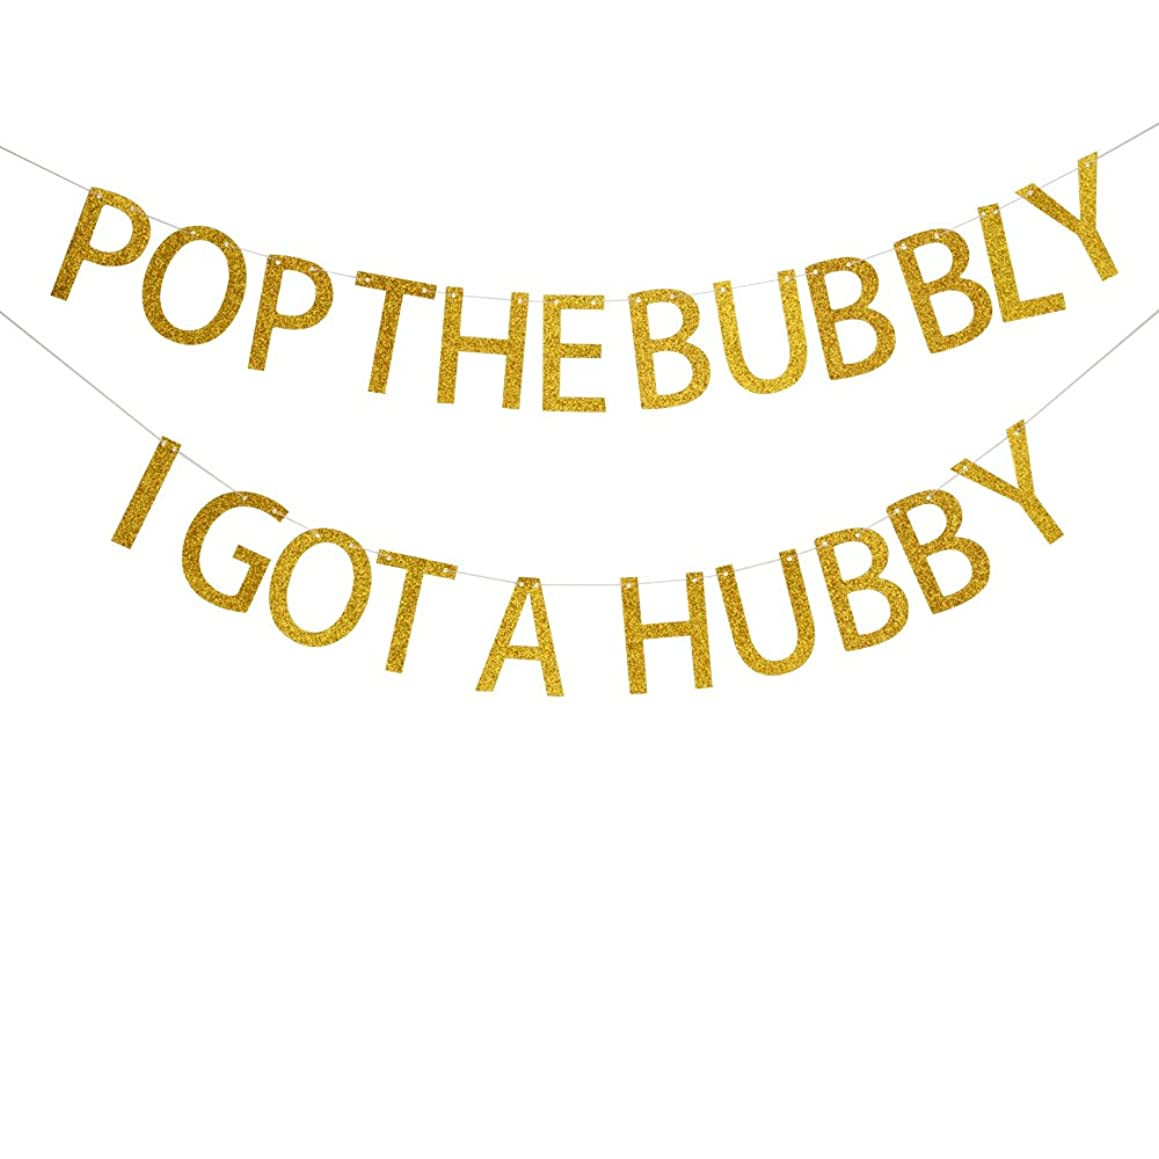 Pop The Bubbly I Got A Hubby Gold Glitter banner for bachelorette party,bridal shower,wedding reception and engagement party